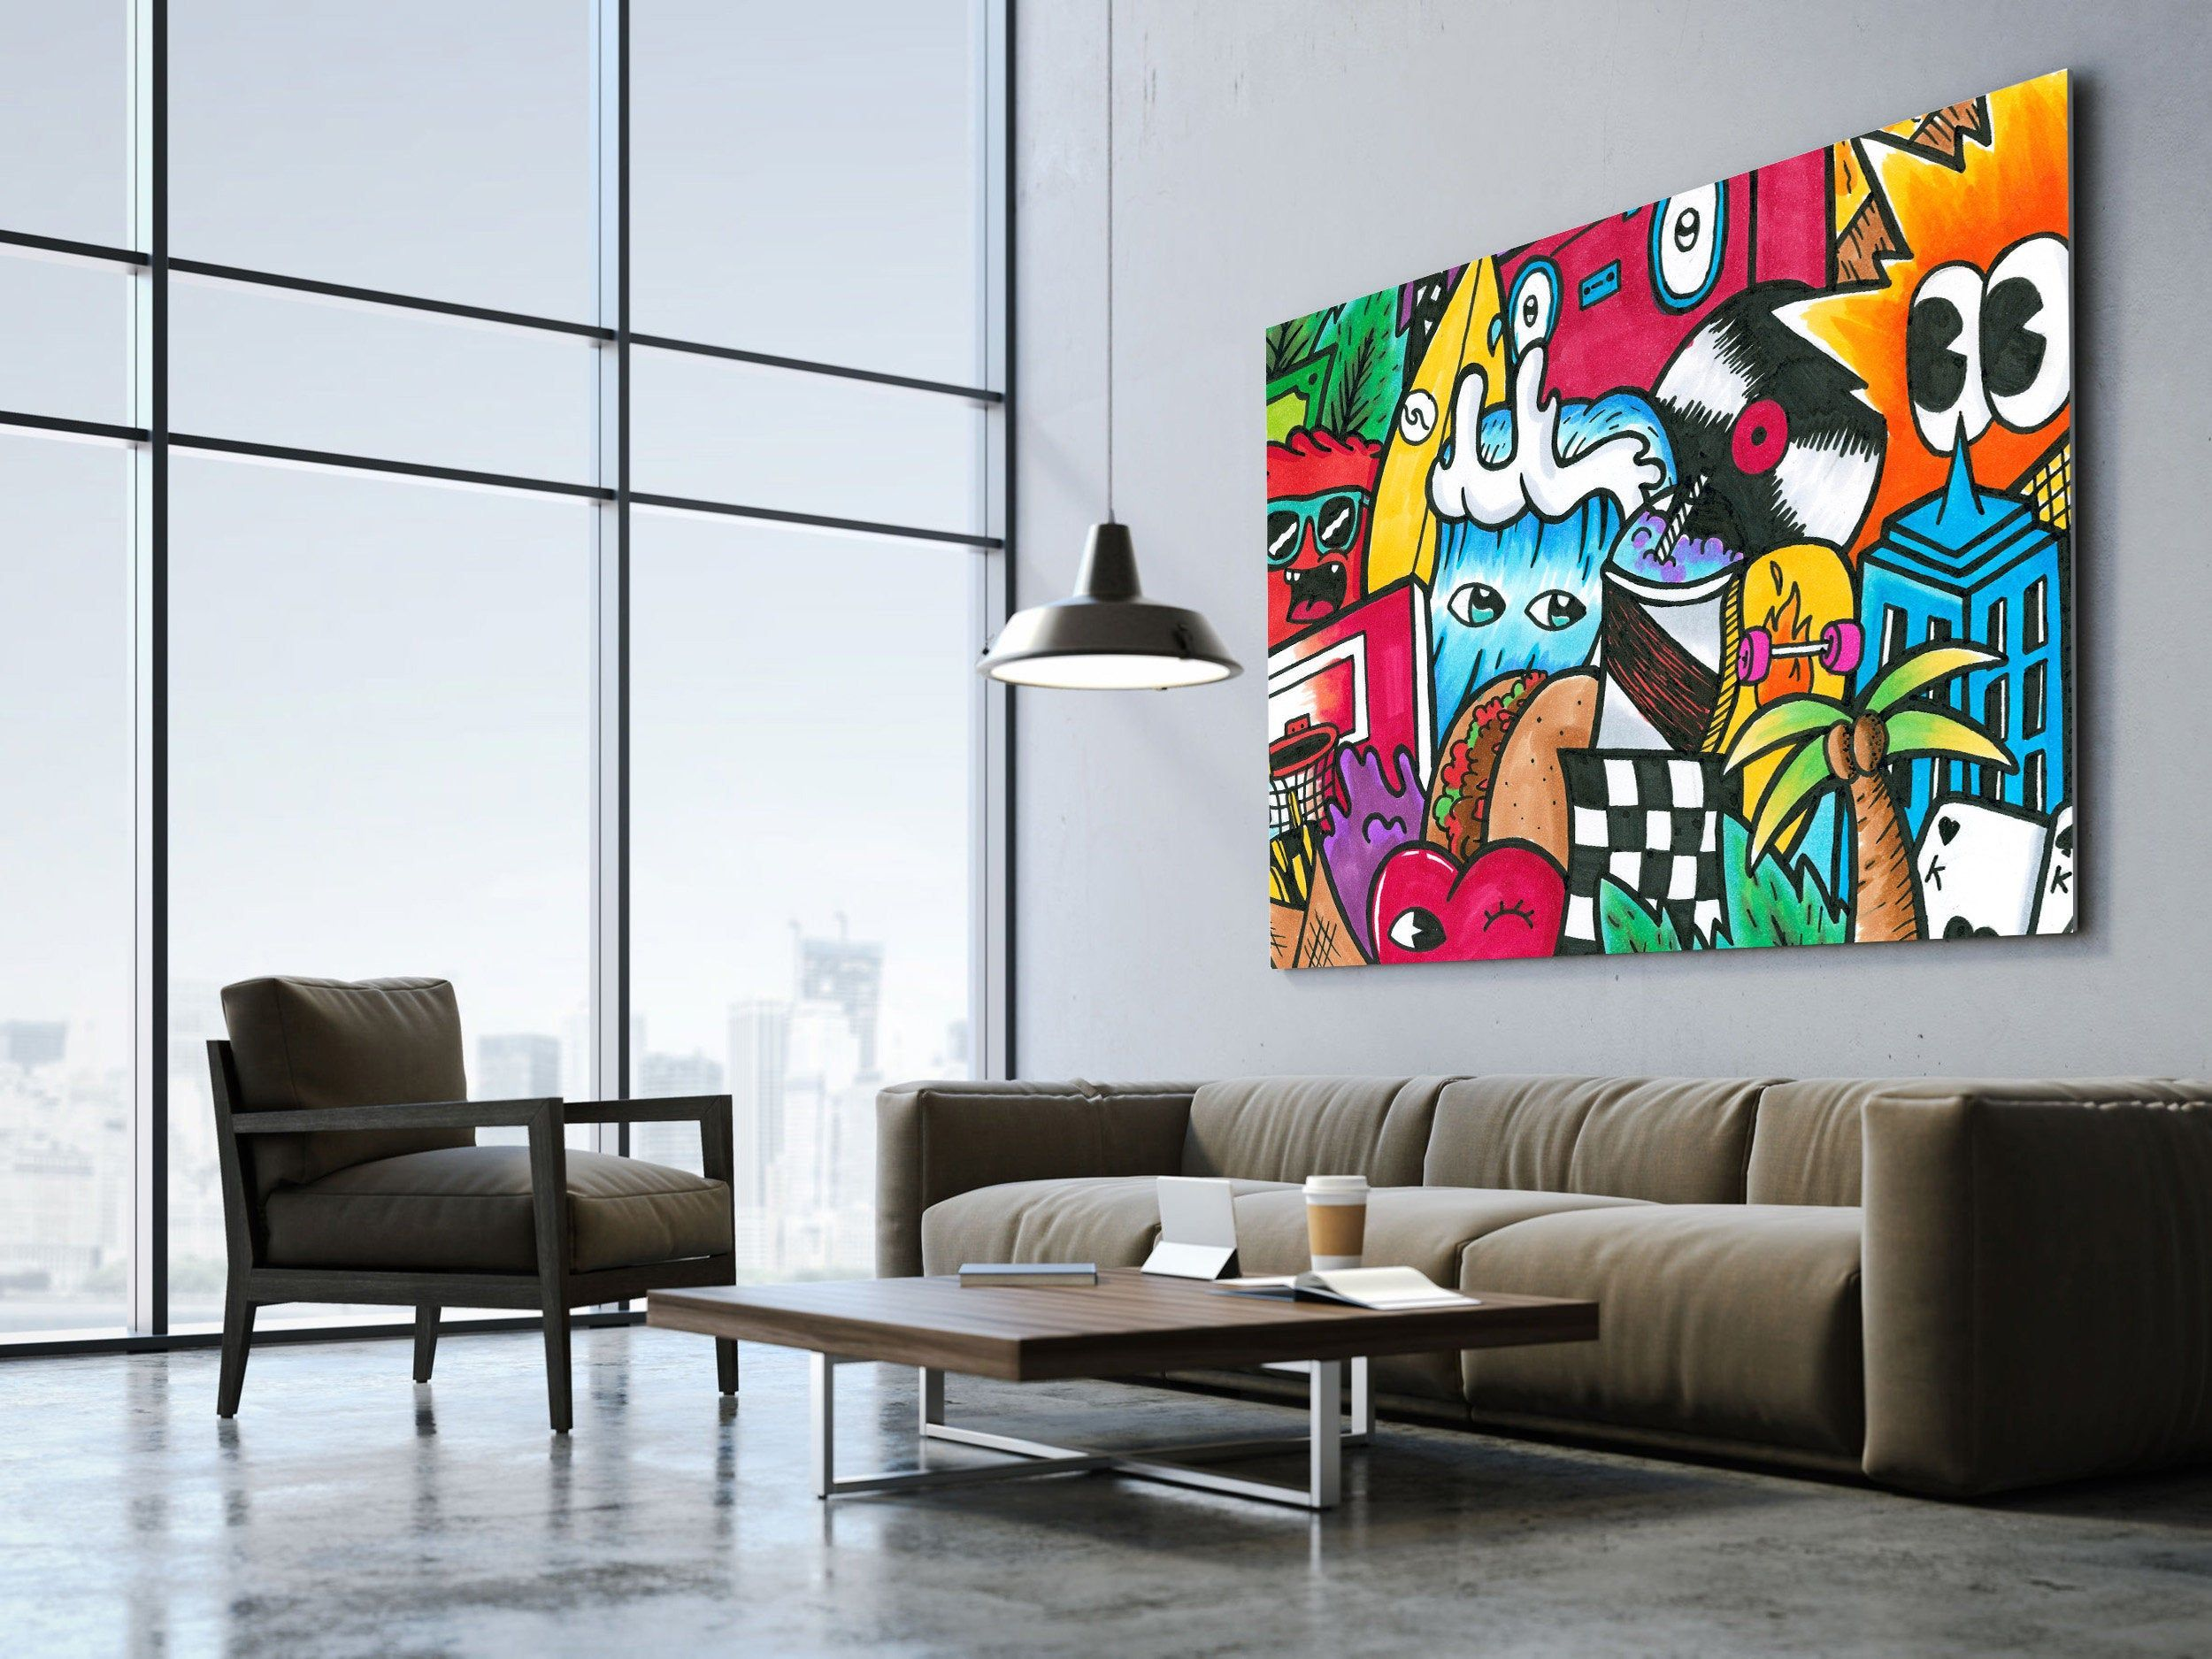 Extra Large Wall Art Pop Art Style Canvas Print Colorful Wall Etsy In 2020 Graffiti Wall Art Extra Large Wall Art Pop Art Canvas